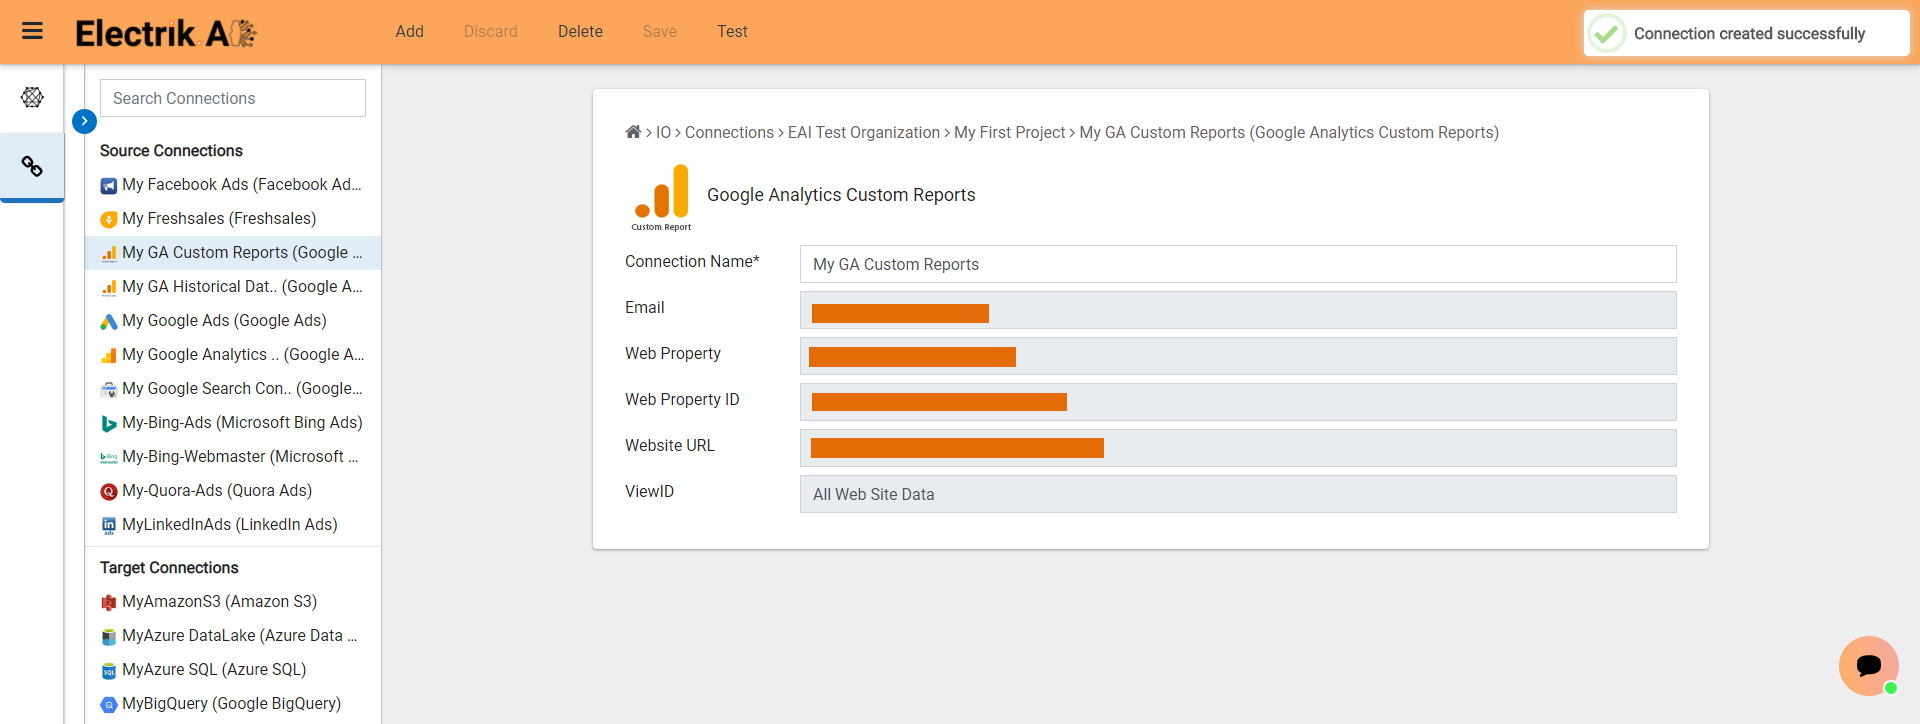 Successfully created a Google Analytics Custom Report Connection-ElectrikAI